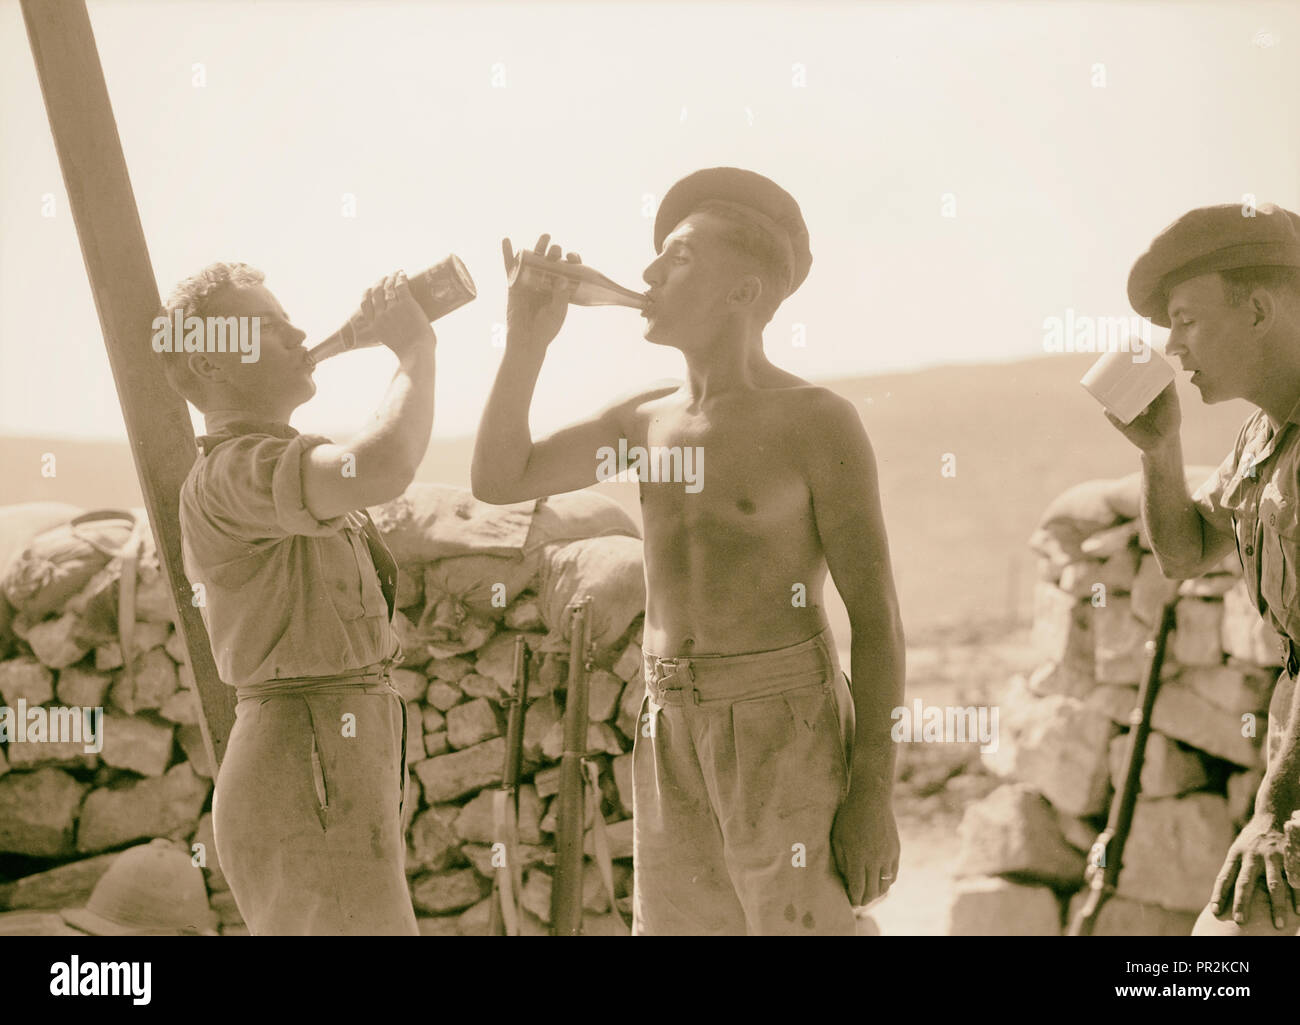 British Military Camp at klm. 41, Lubban-Nablus, Middle East Rd. British Tommies well earned bottle of beer in the Lubban Camp - Stock Image